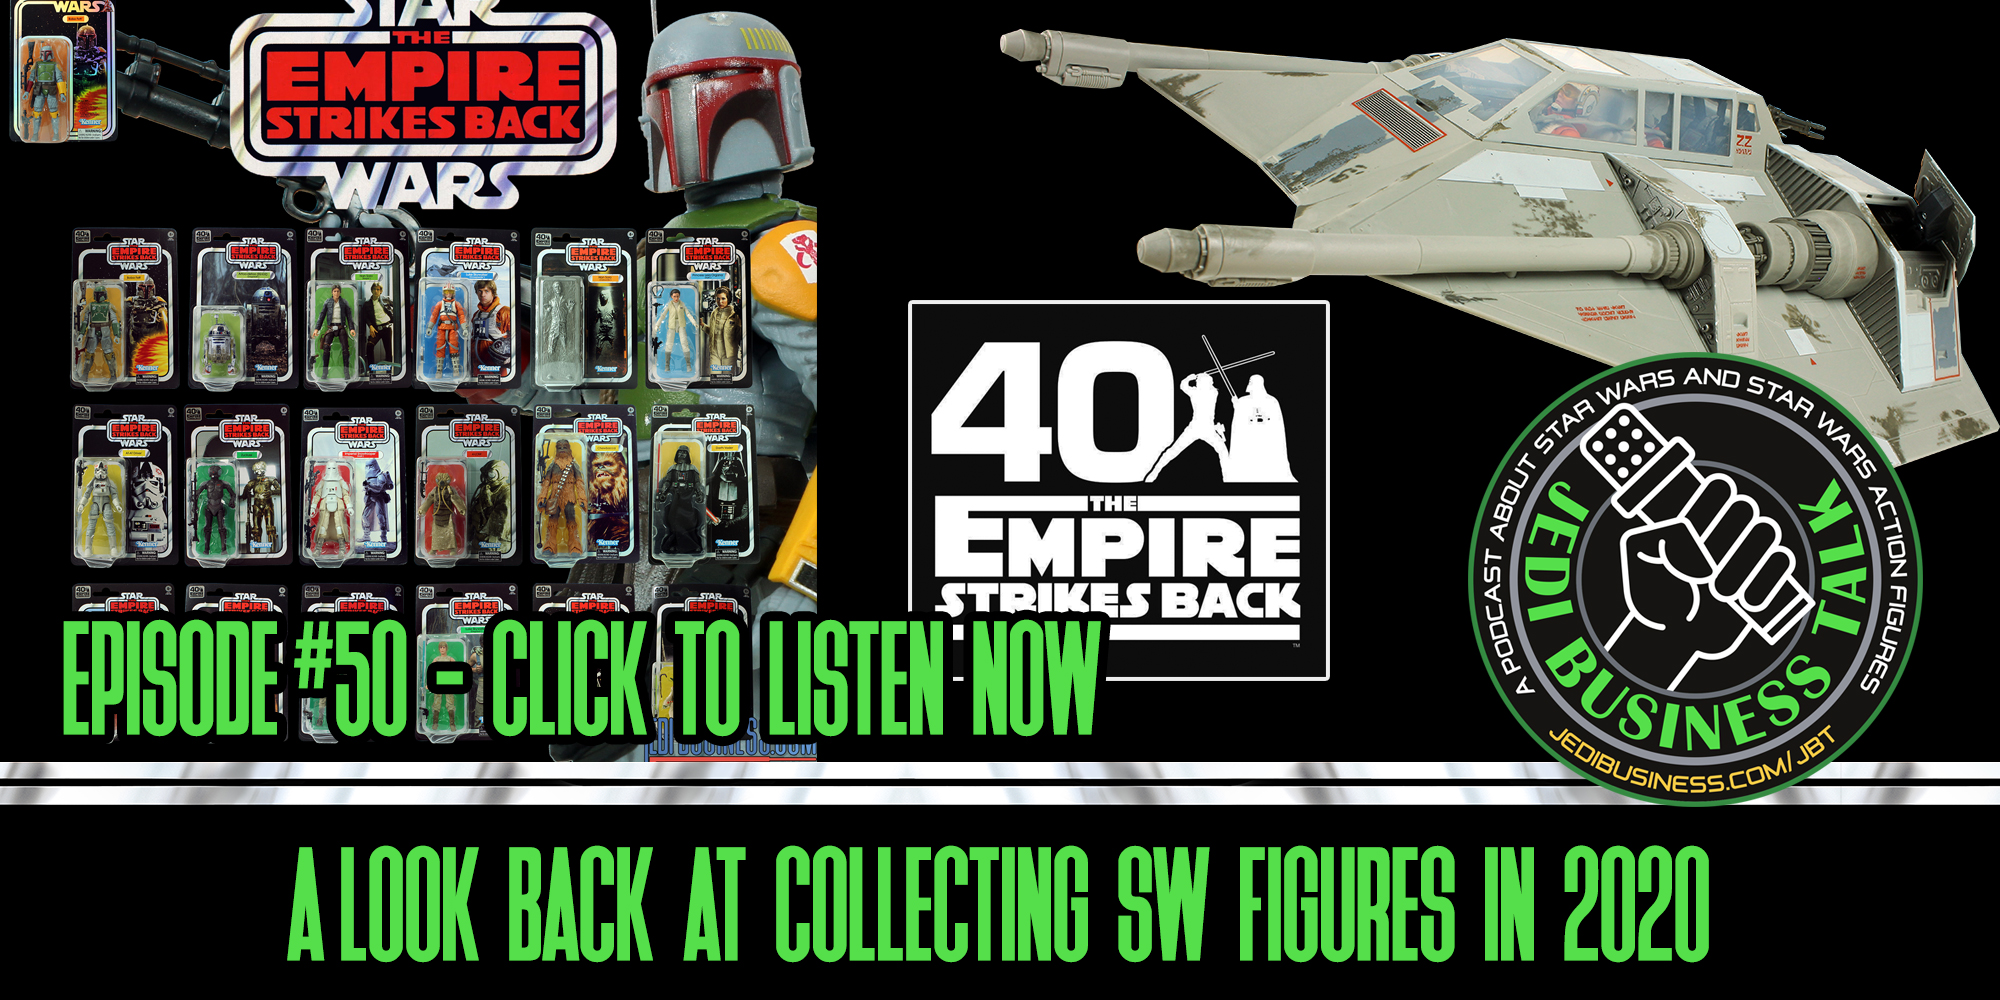 JBT Jedi Business Talk - A Look Back At Collecting SW Figures In 2020